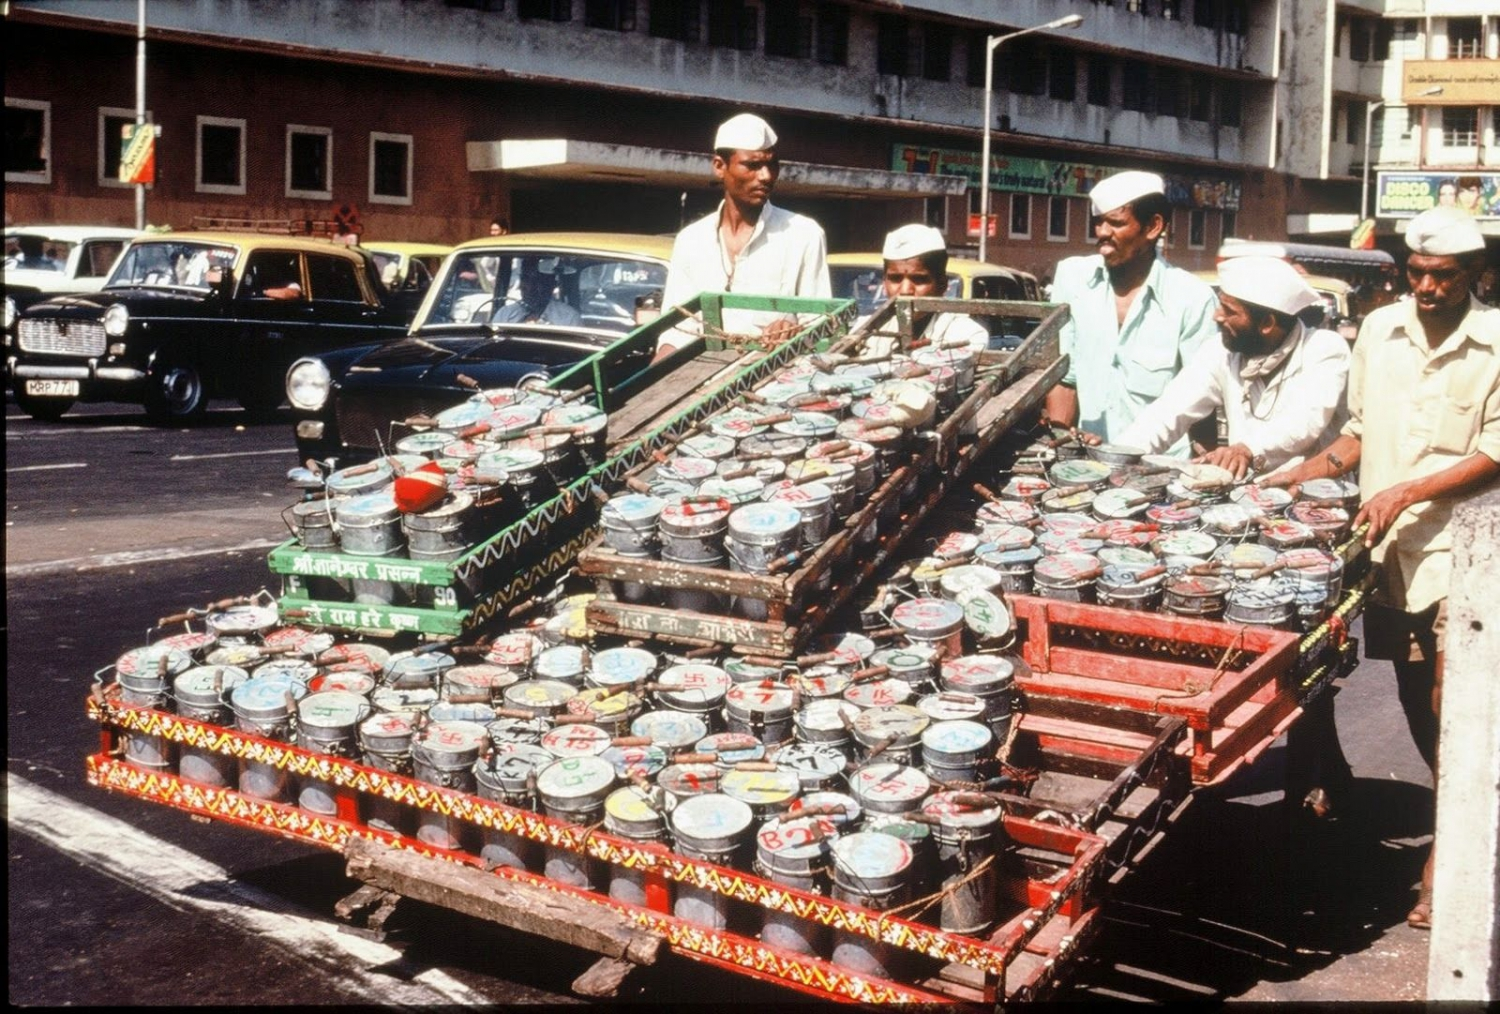 Dabbawala services - so many containers!